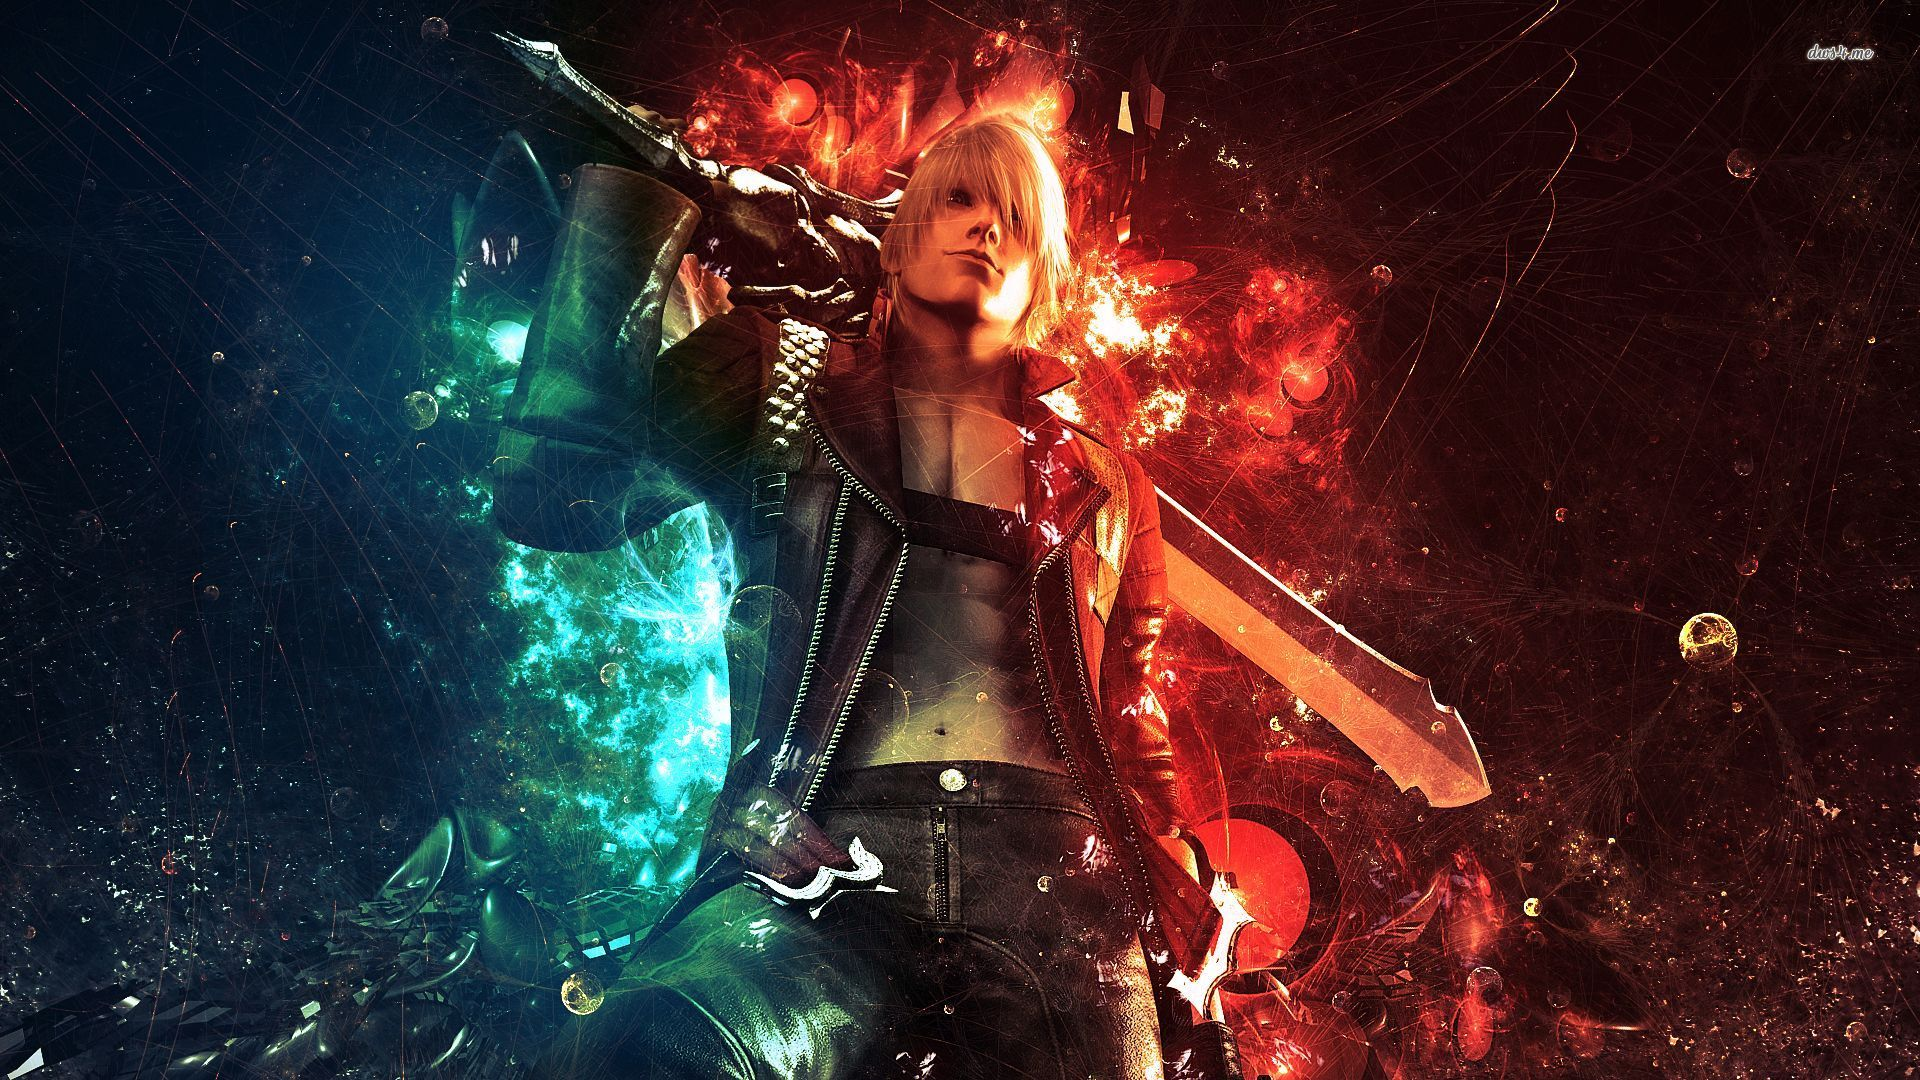 6426 devil may cry 3 dante 1920x1080 game wallpaper Evil Wallpapers HD 1920x1080